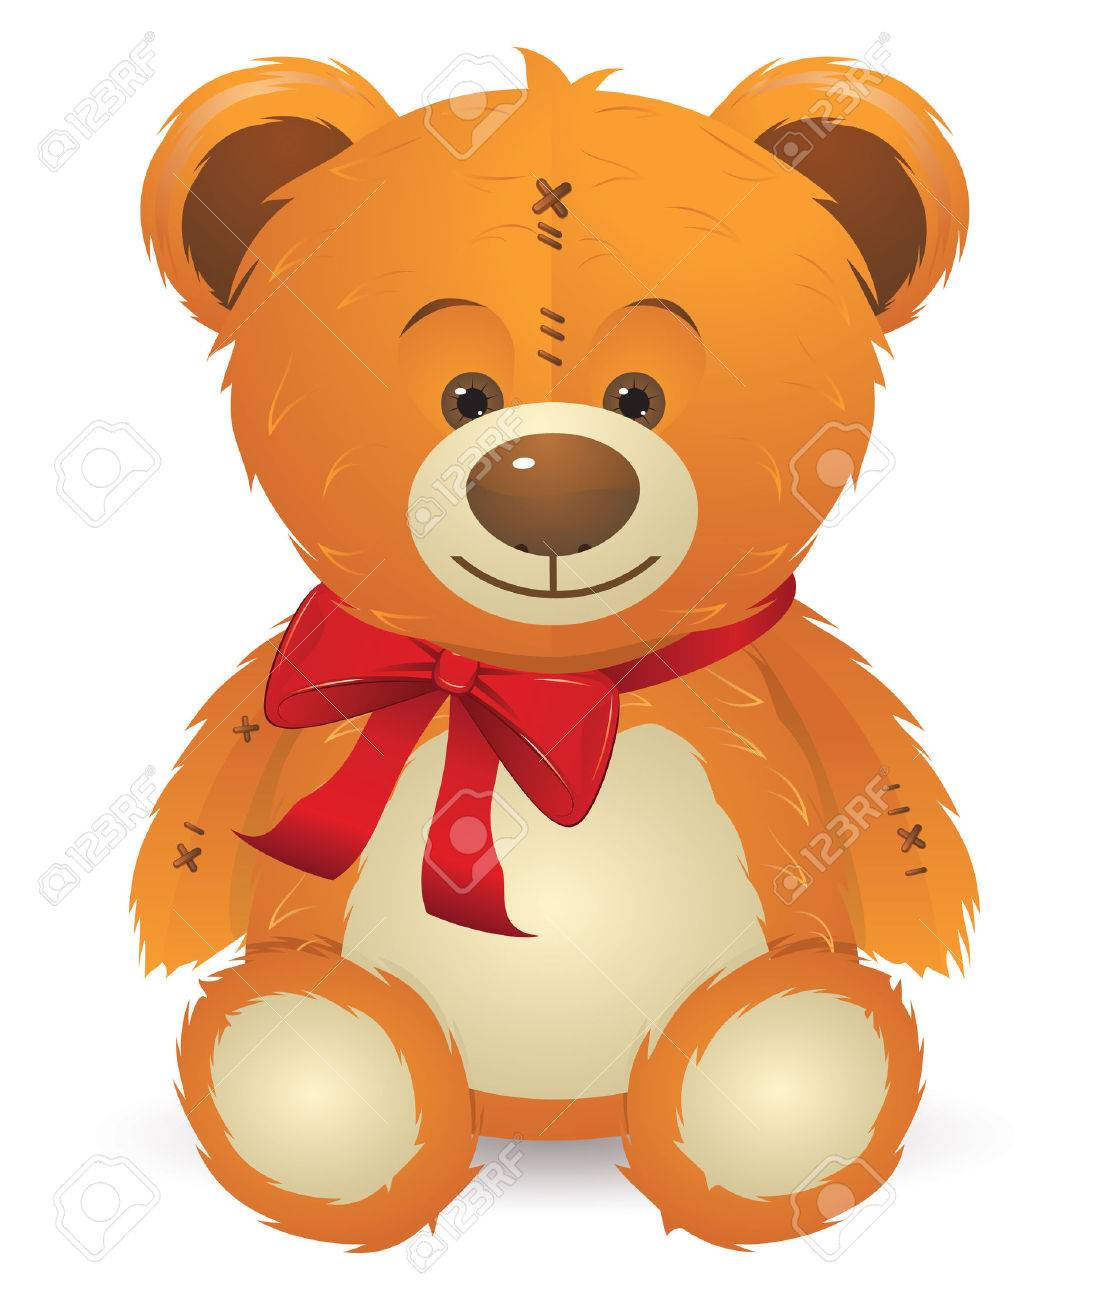 Happy Teddy Bear Clipart.